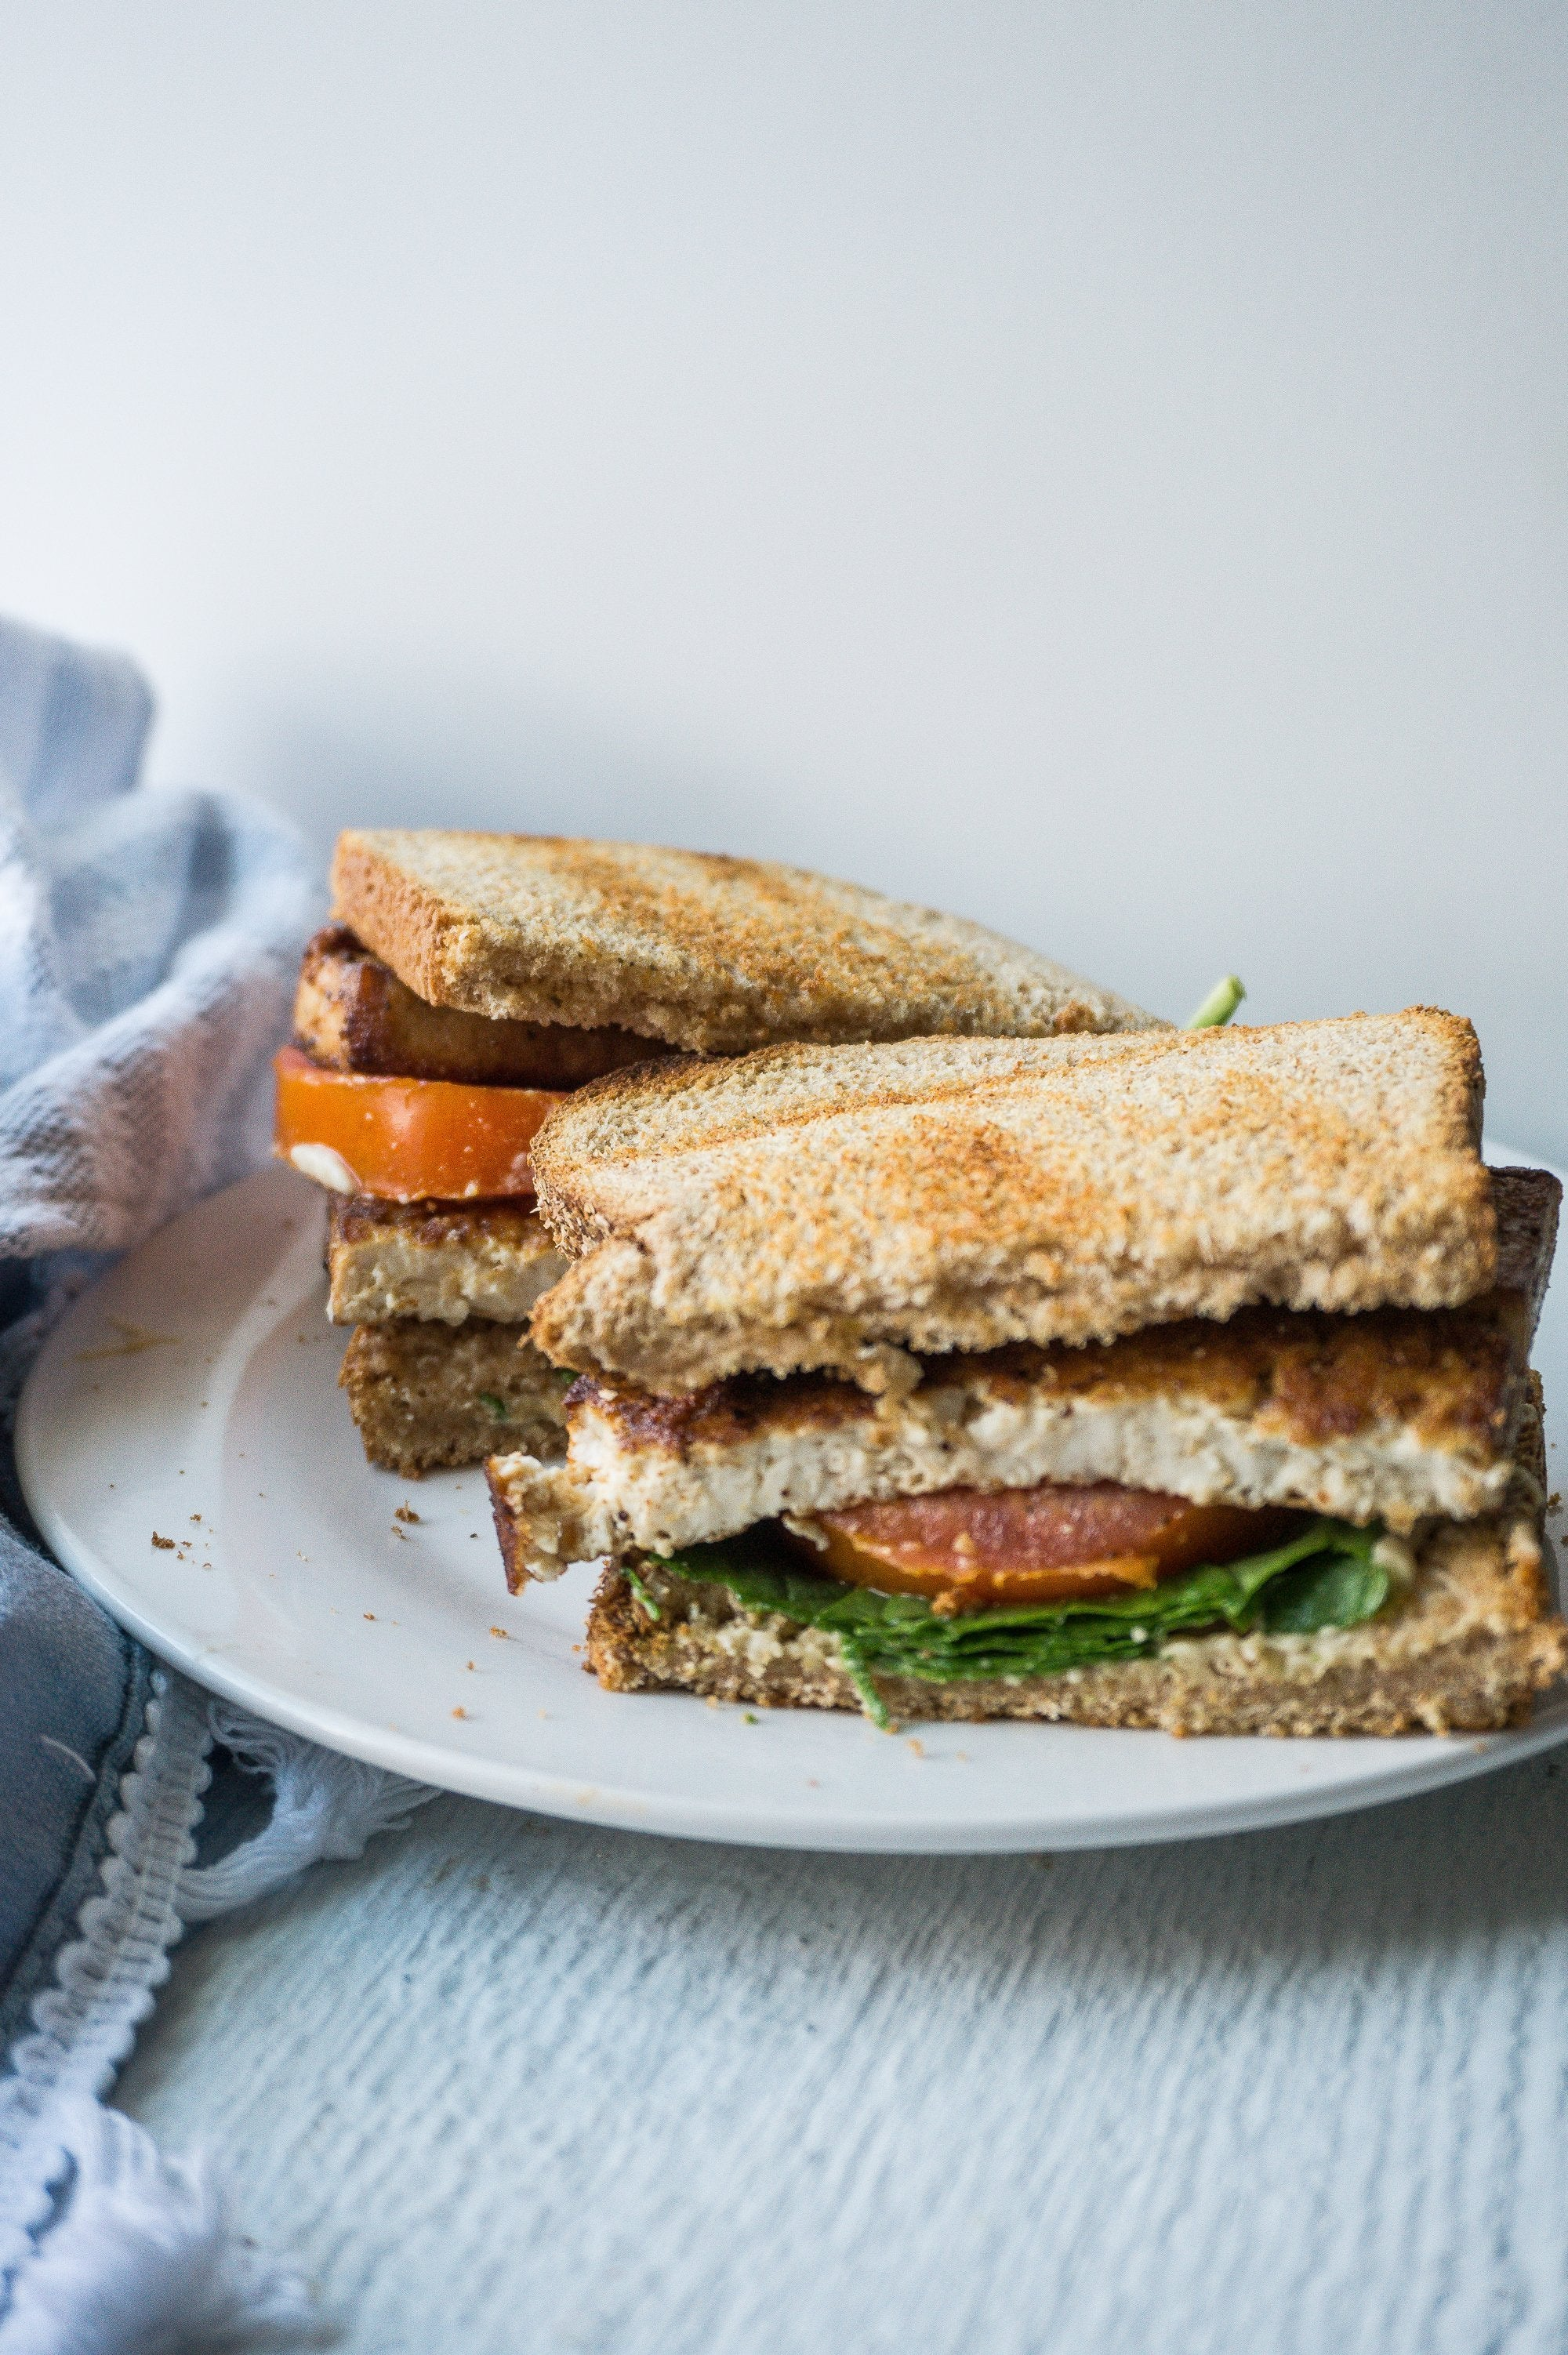 The Vegan BLT with Tofu